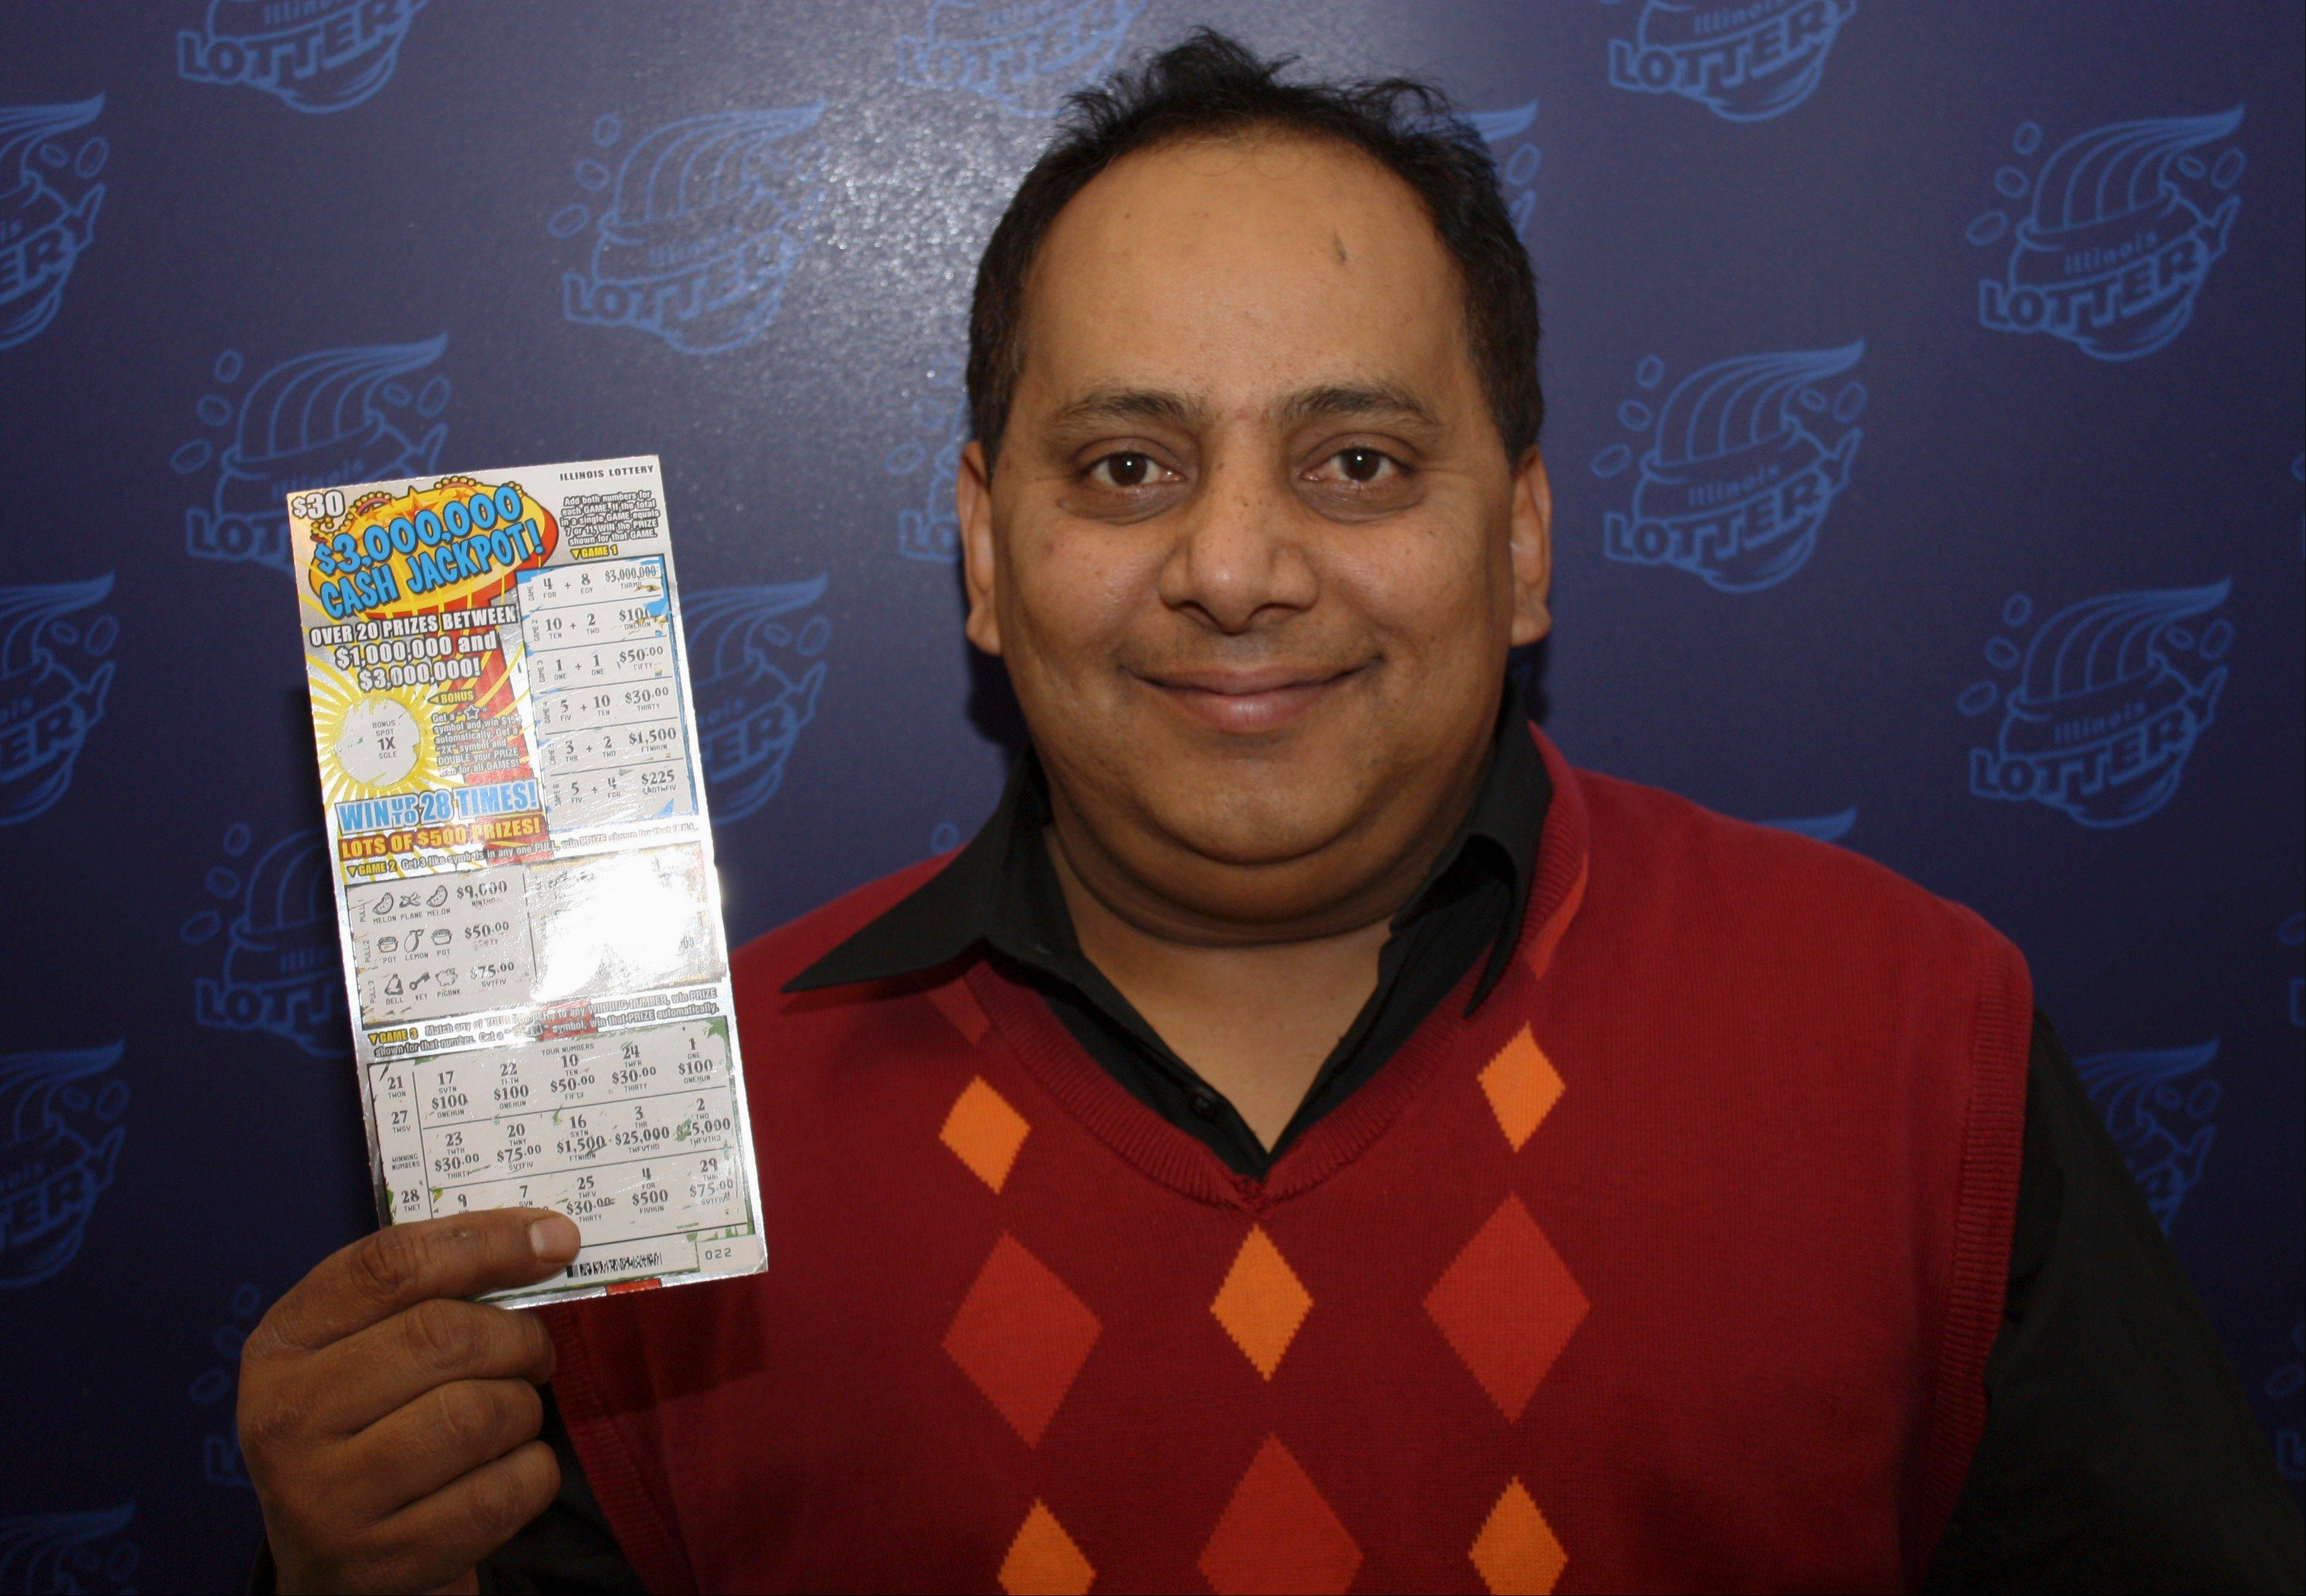 This undated photo provided by the Illinois Lottery shows Urooj Khan, 46, of Chicago�s West Rogers Park neighborhood, posing with a winning lottery ticket. The Cook County medical examiner said Khan was fatally poisoned with cyanide July 20, 2012.